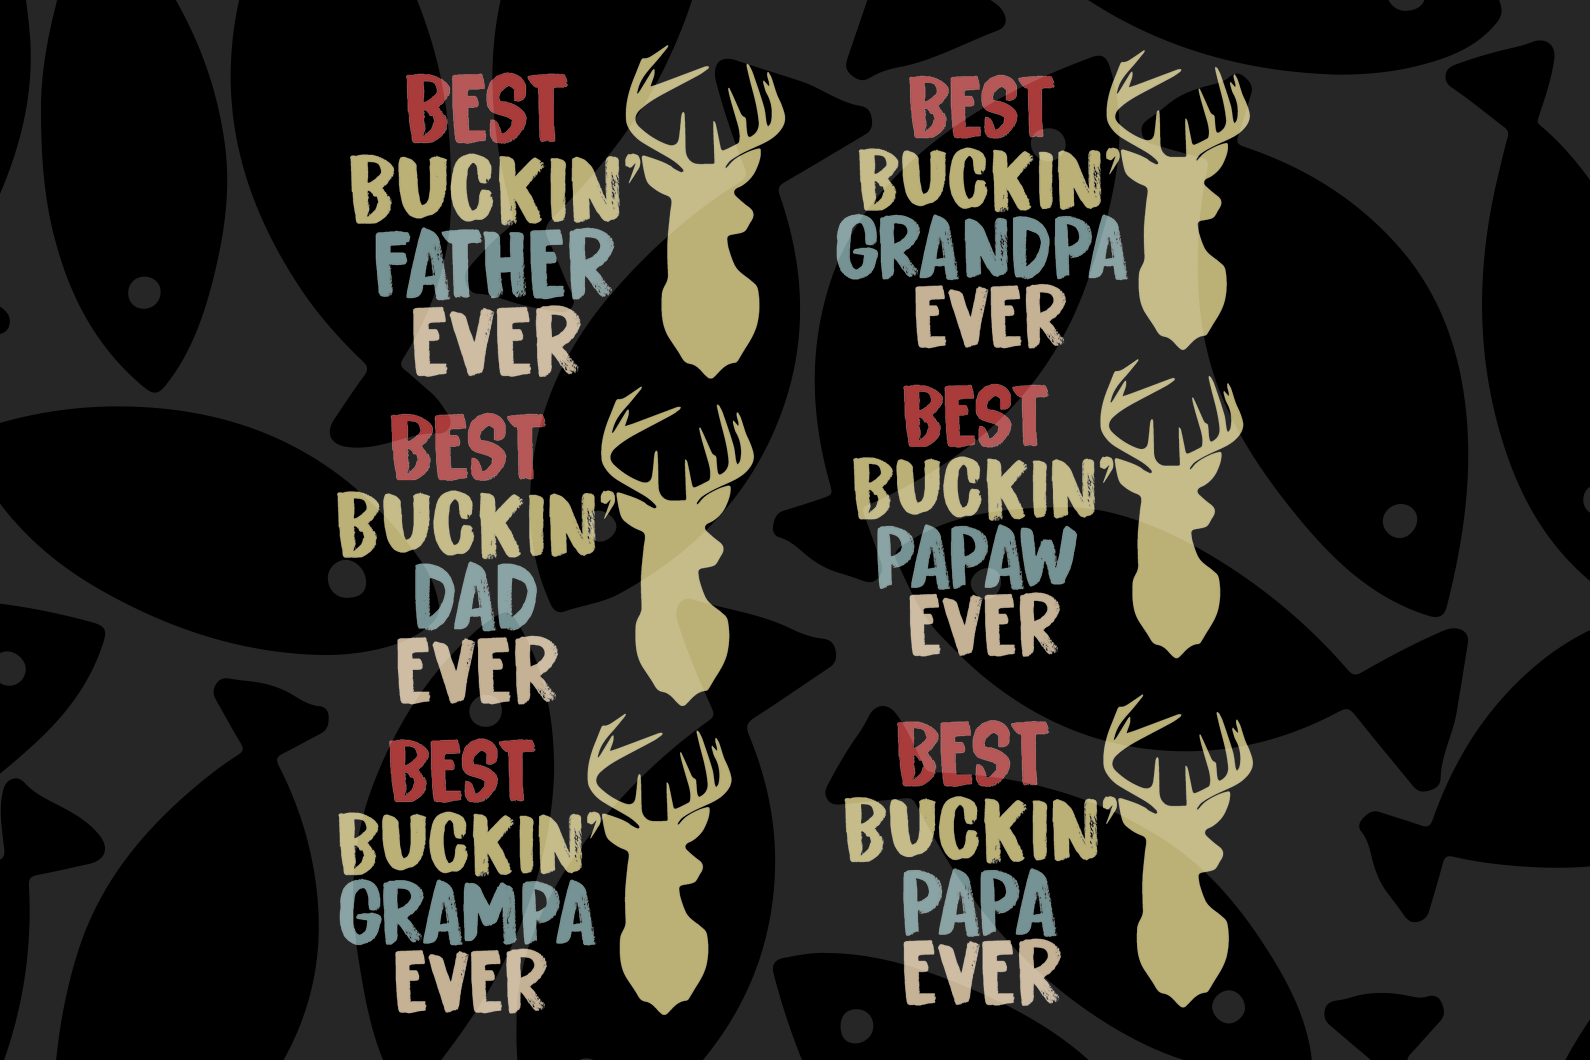 Best buckin' father ever bundle svg, dad svg, dad gifts, super cool dad, gift for dad, funny dad, best dad svg, family svg , family shirt,family gift,trending svg, Files For Silhouette, Files For Cricut, SVG, DXF, EPS, PNG, Instant Download